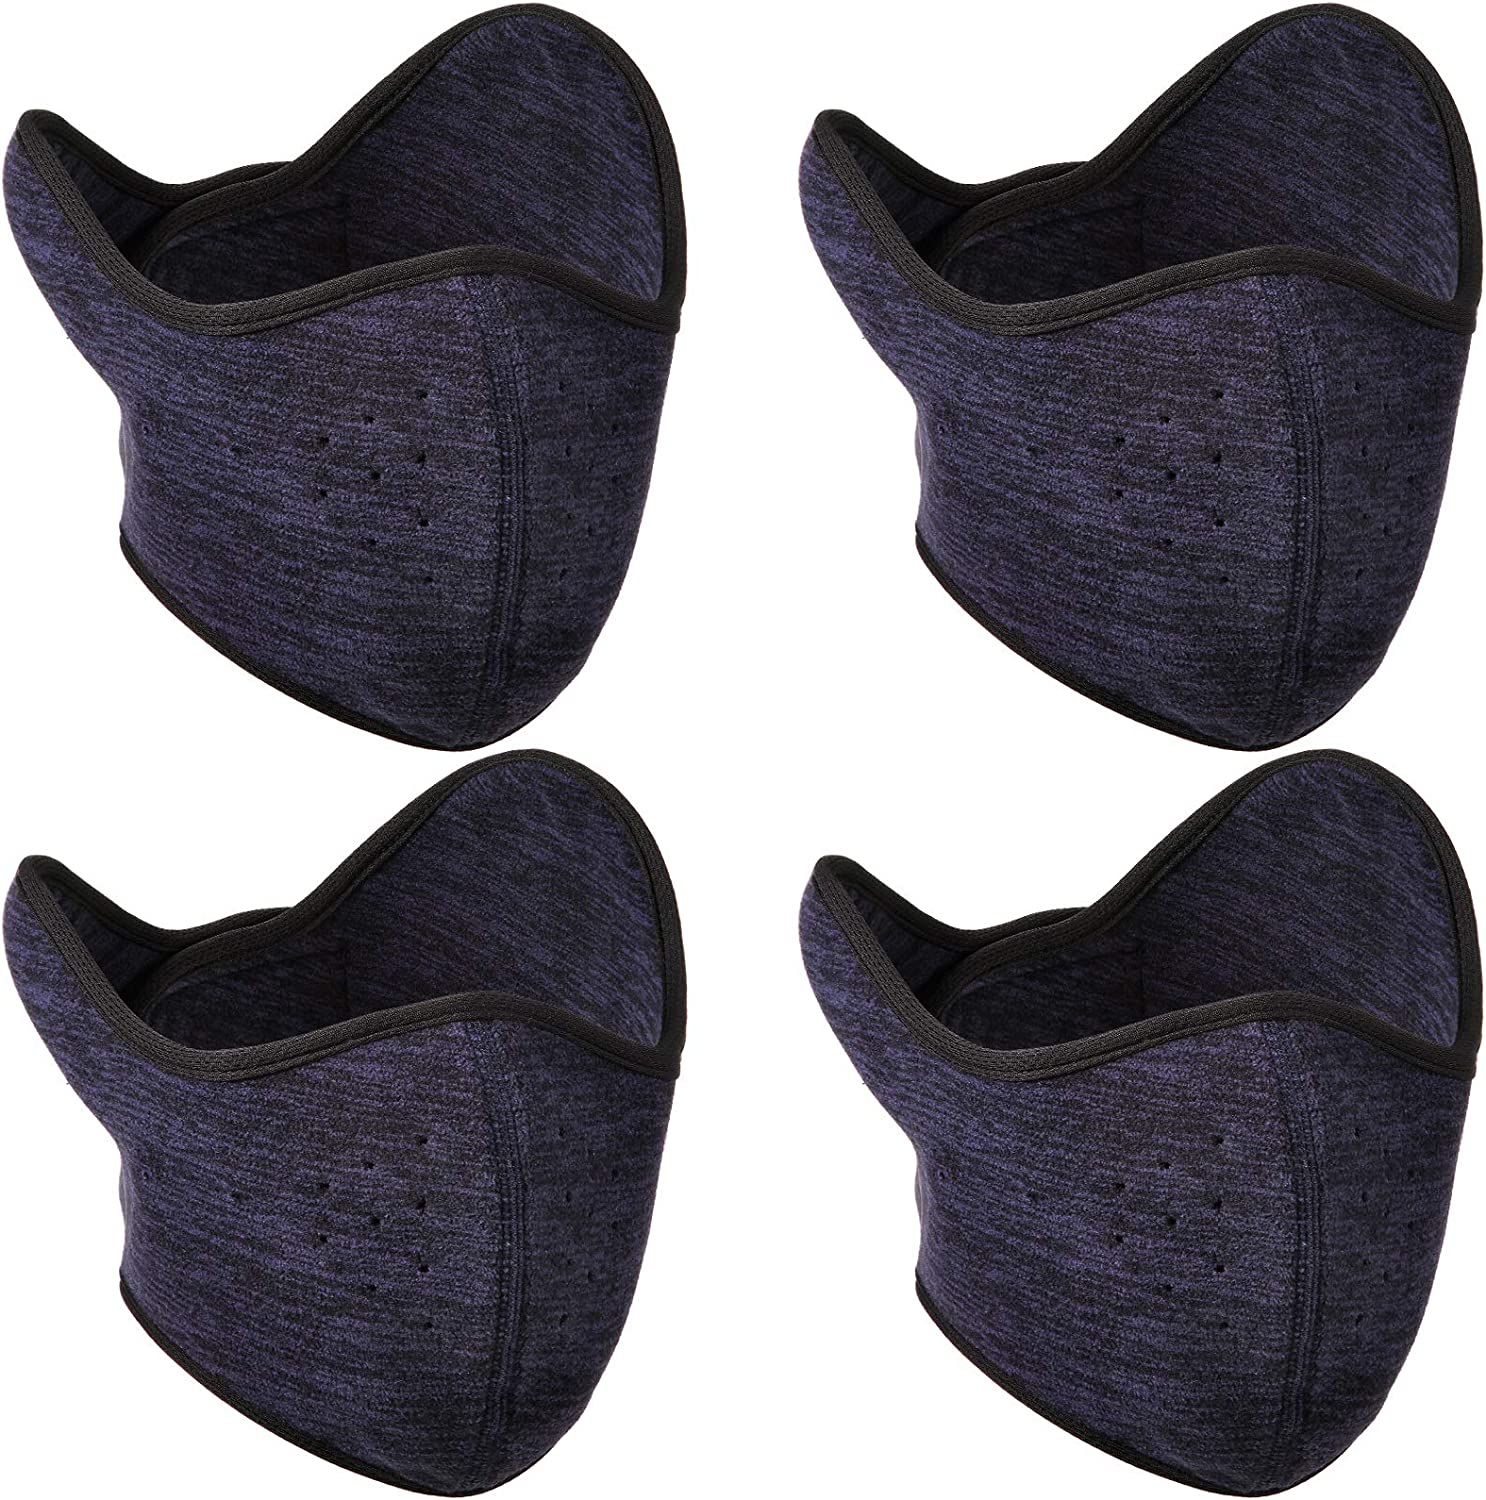 4 Pieces Earflap Half Face Covering Winter Ski Face Covering Windproof Half Balaclava for Outdoor Sports